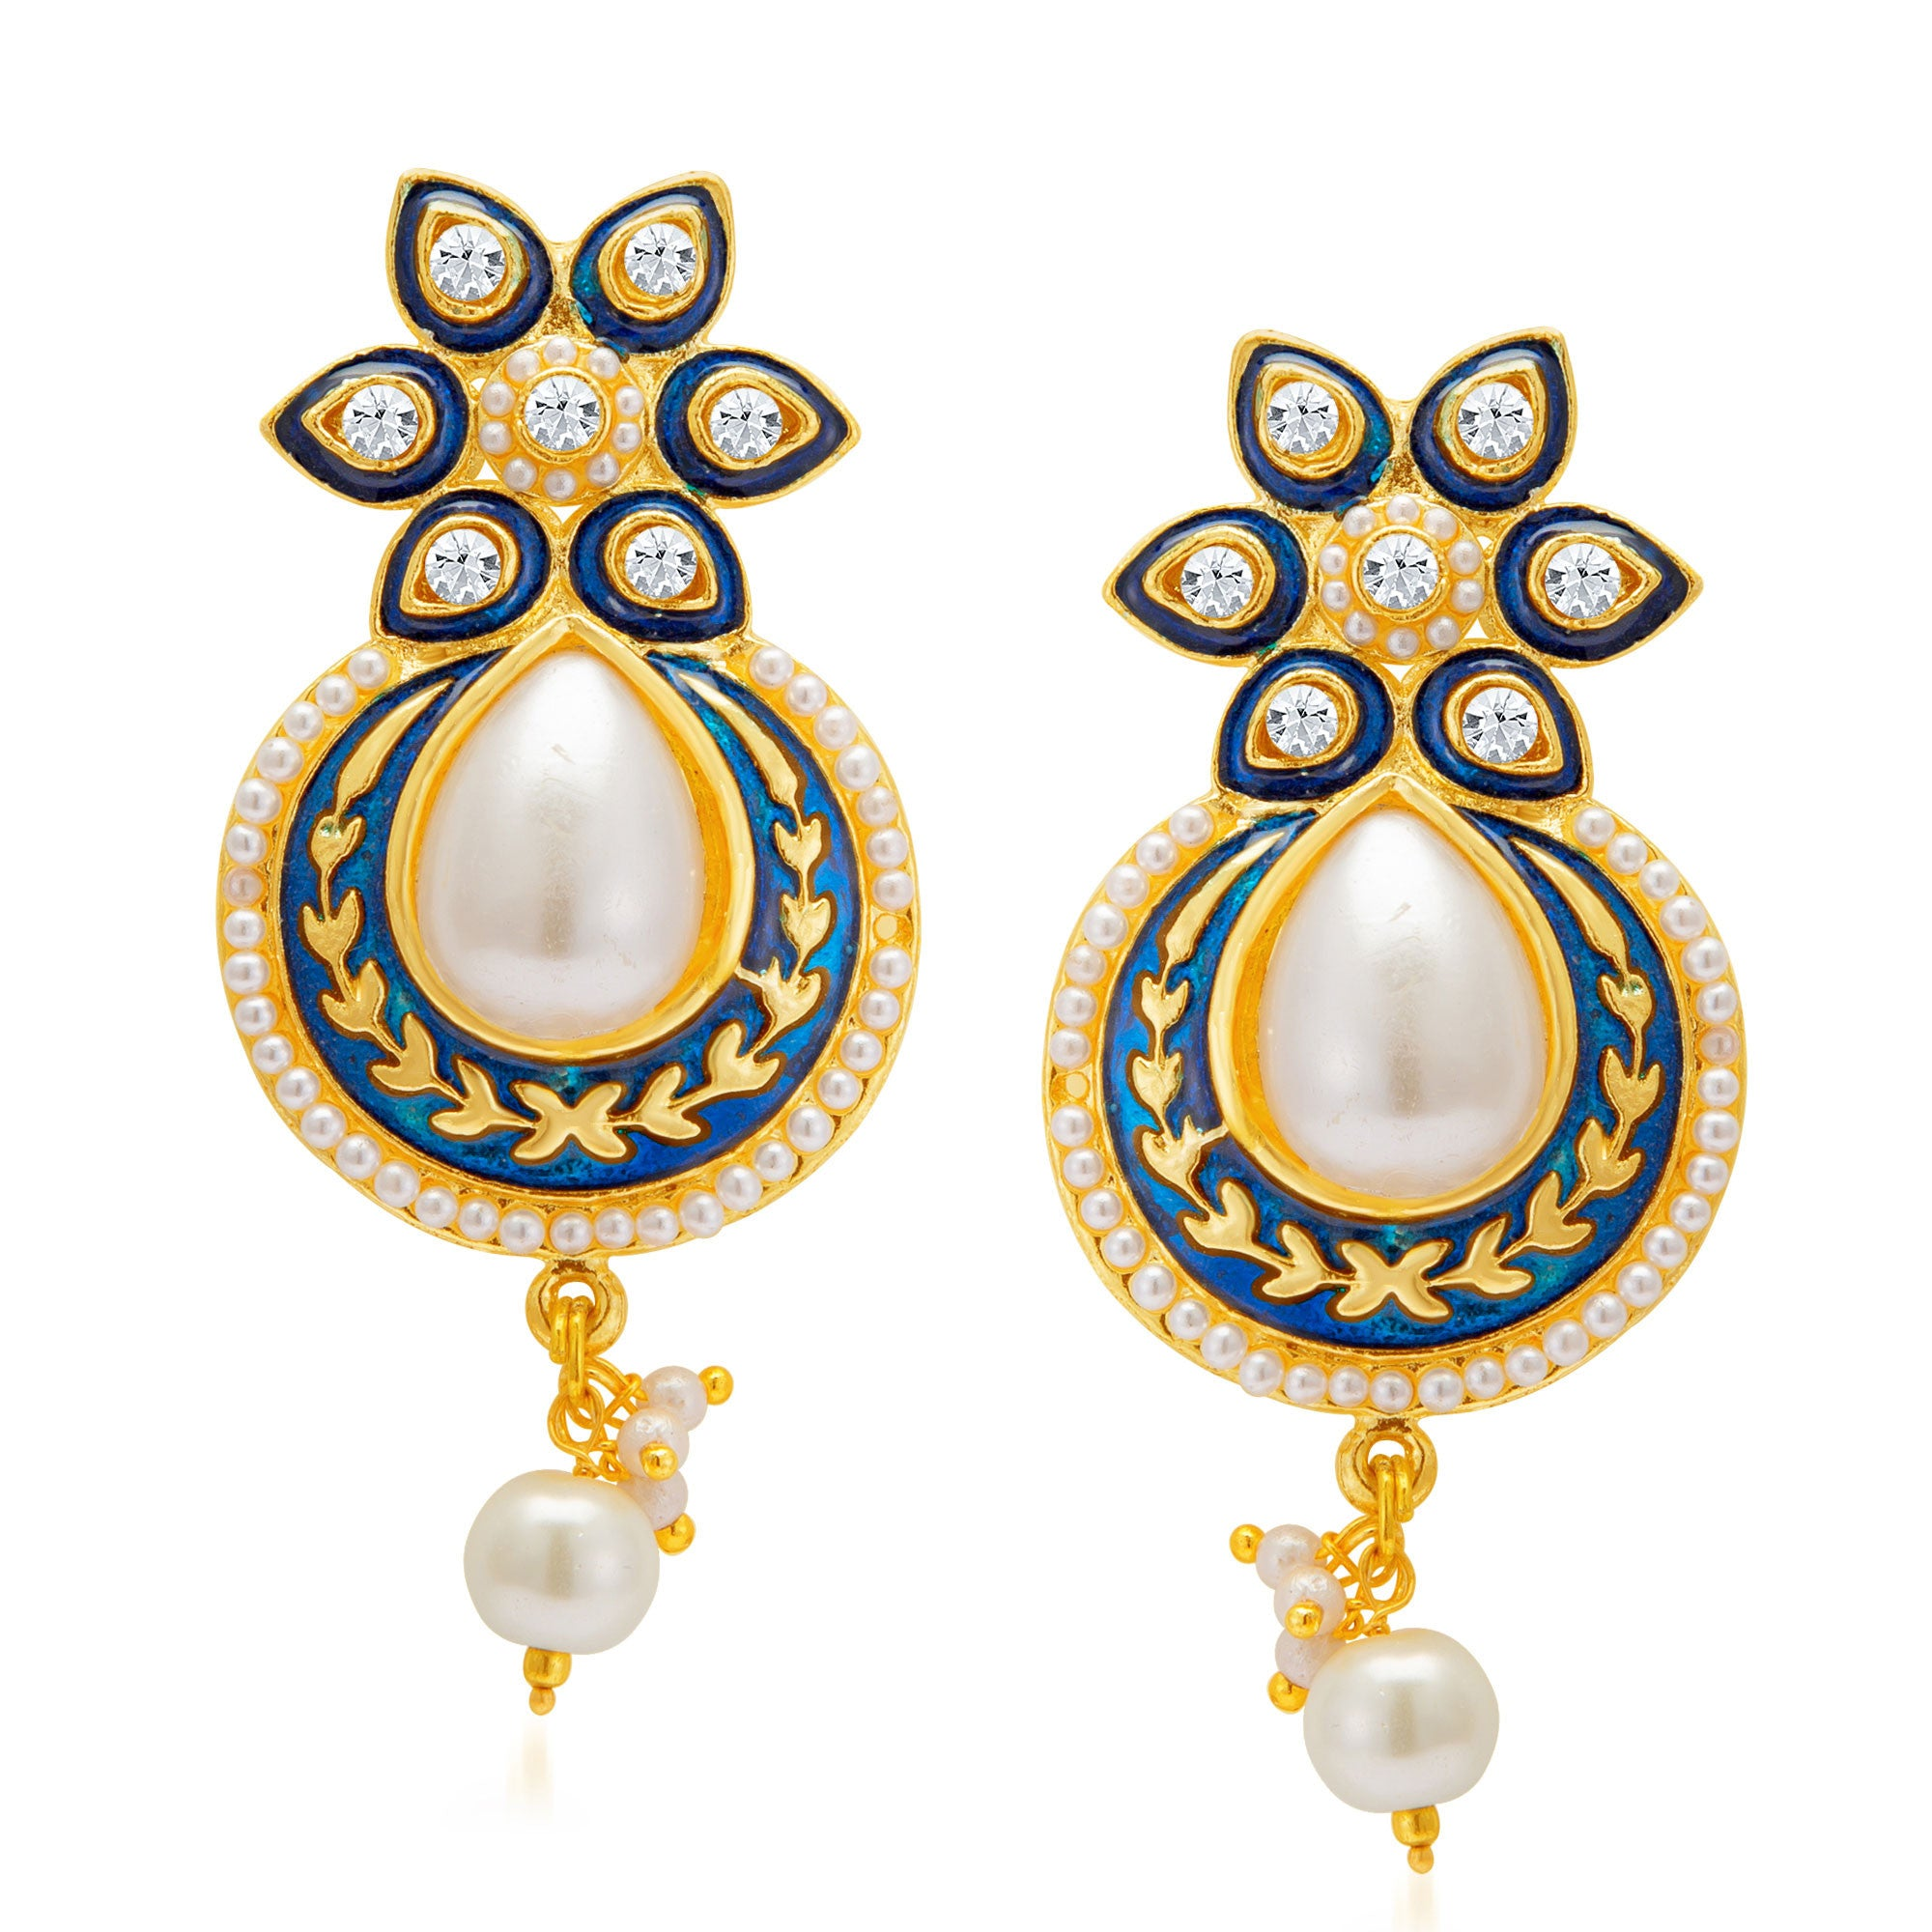 63543ccc93 Sukkhi Exquisite Gold Plated Earring for Women - Sukkhi.com